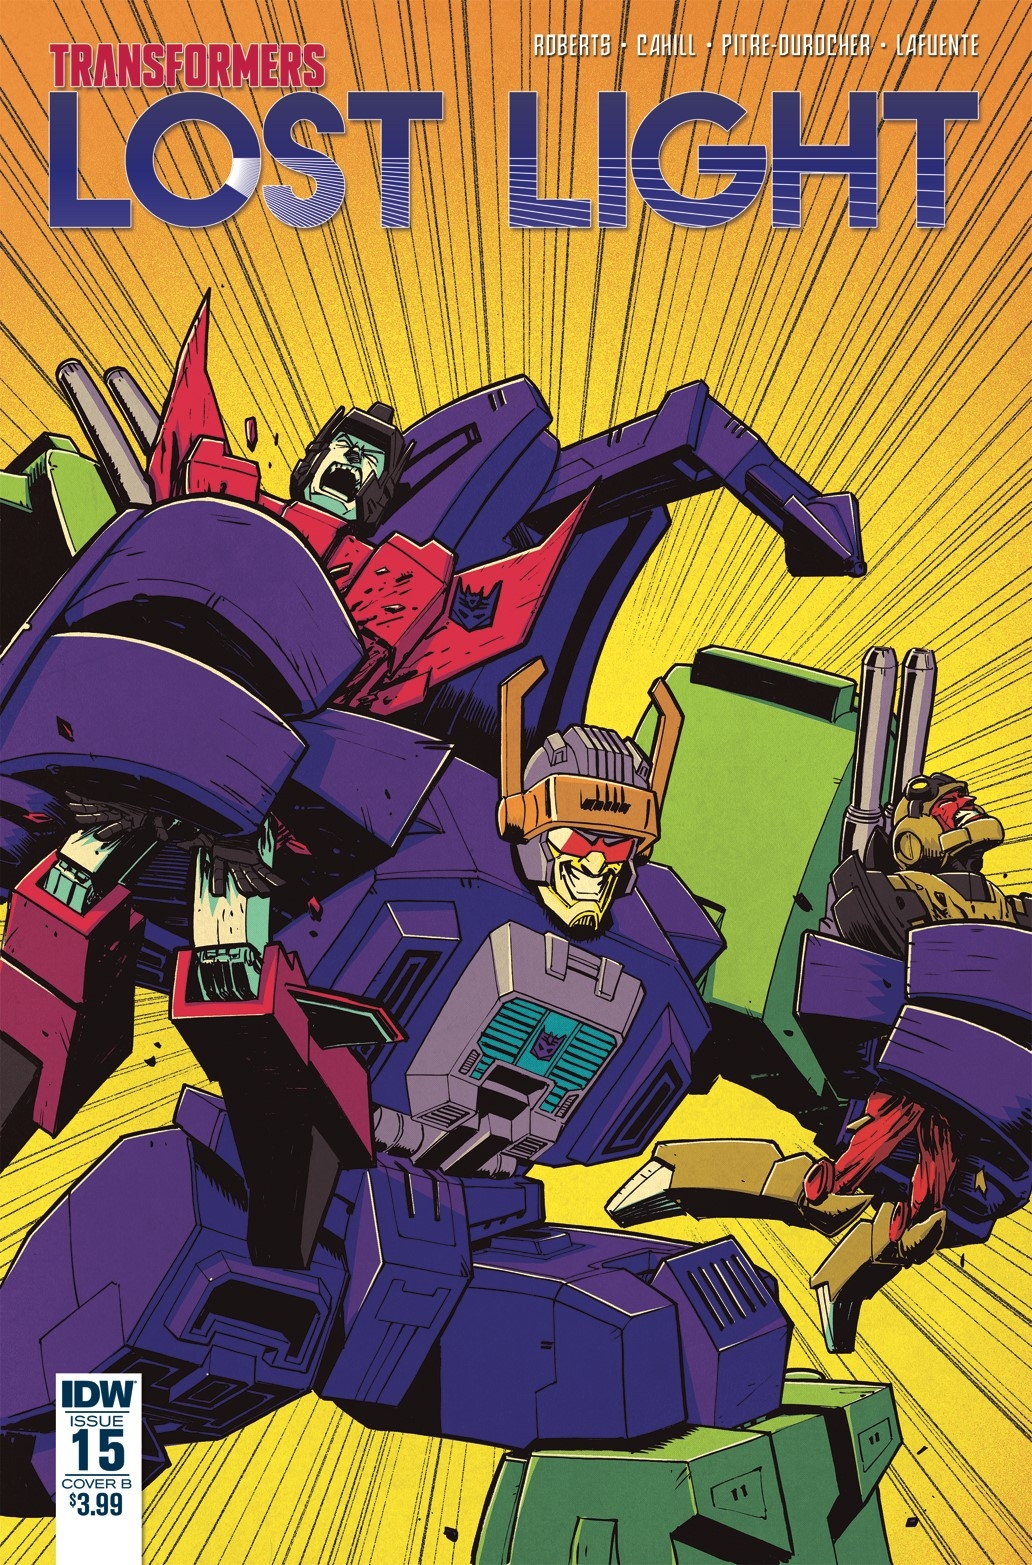 TRANSFORMERS LOST LIGHT #15 CVR B ROCHE